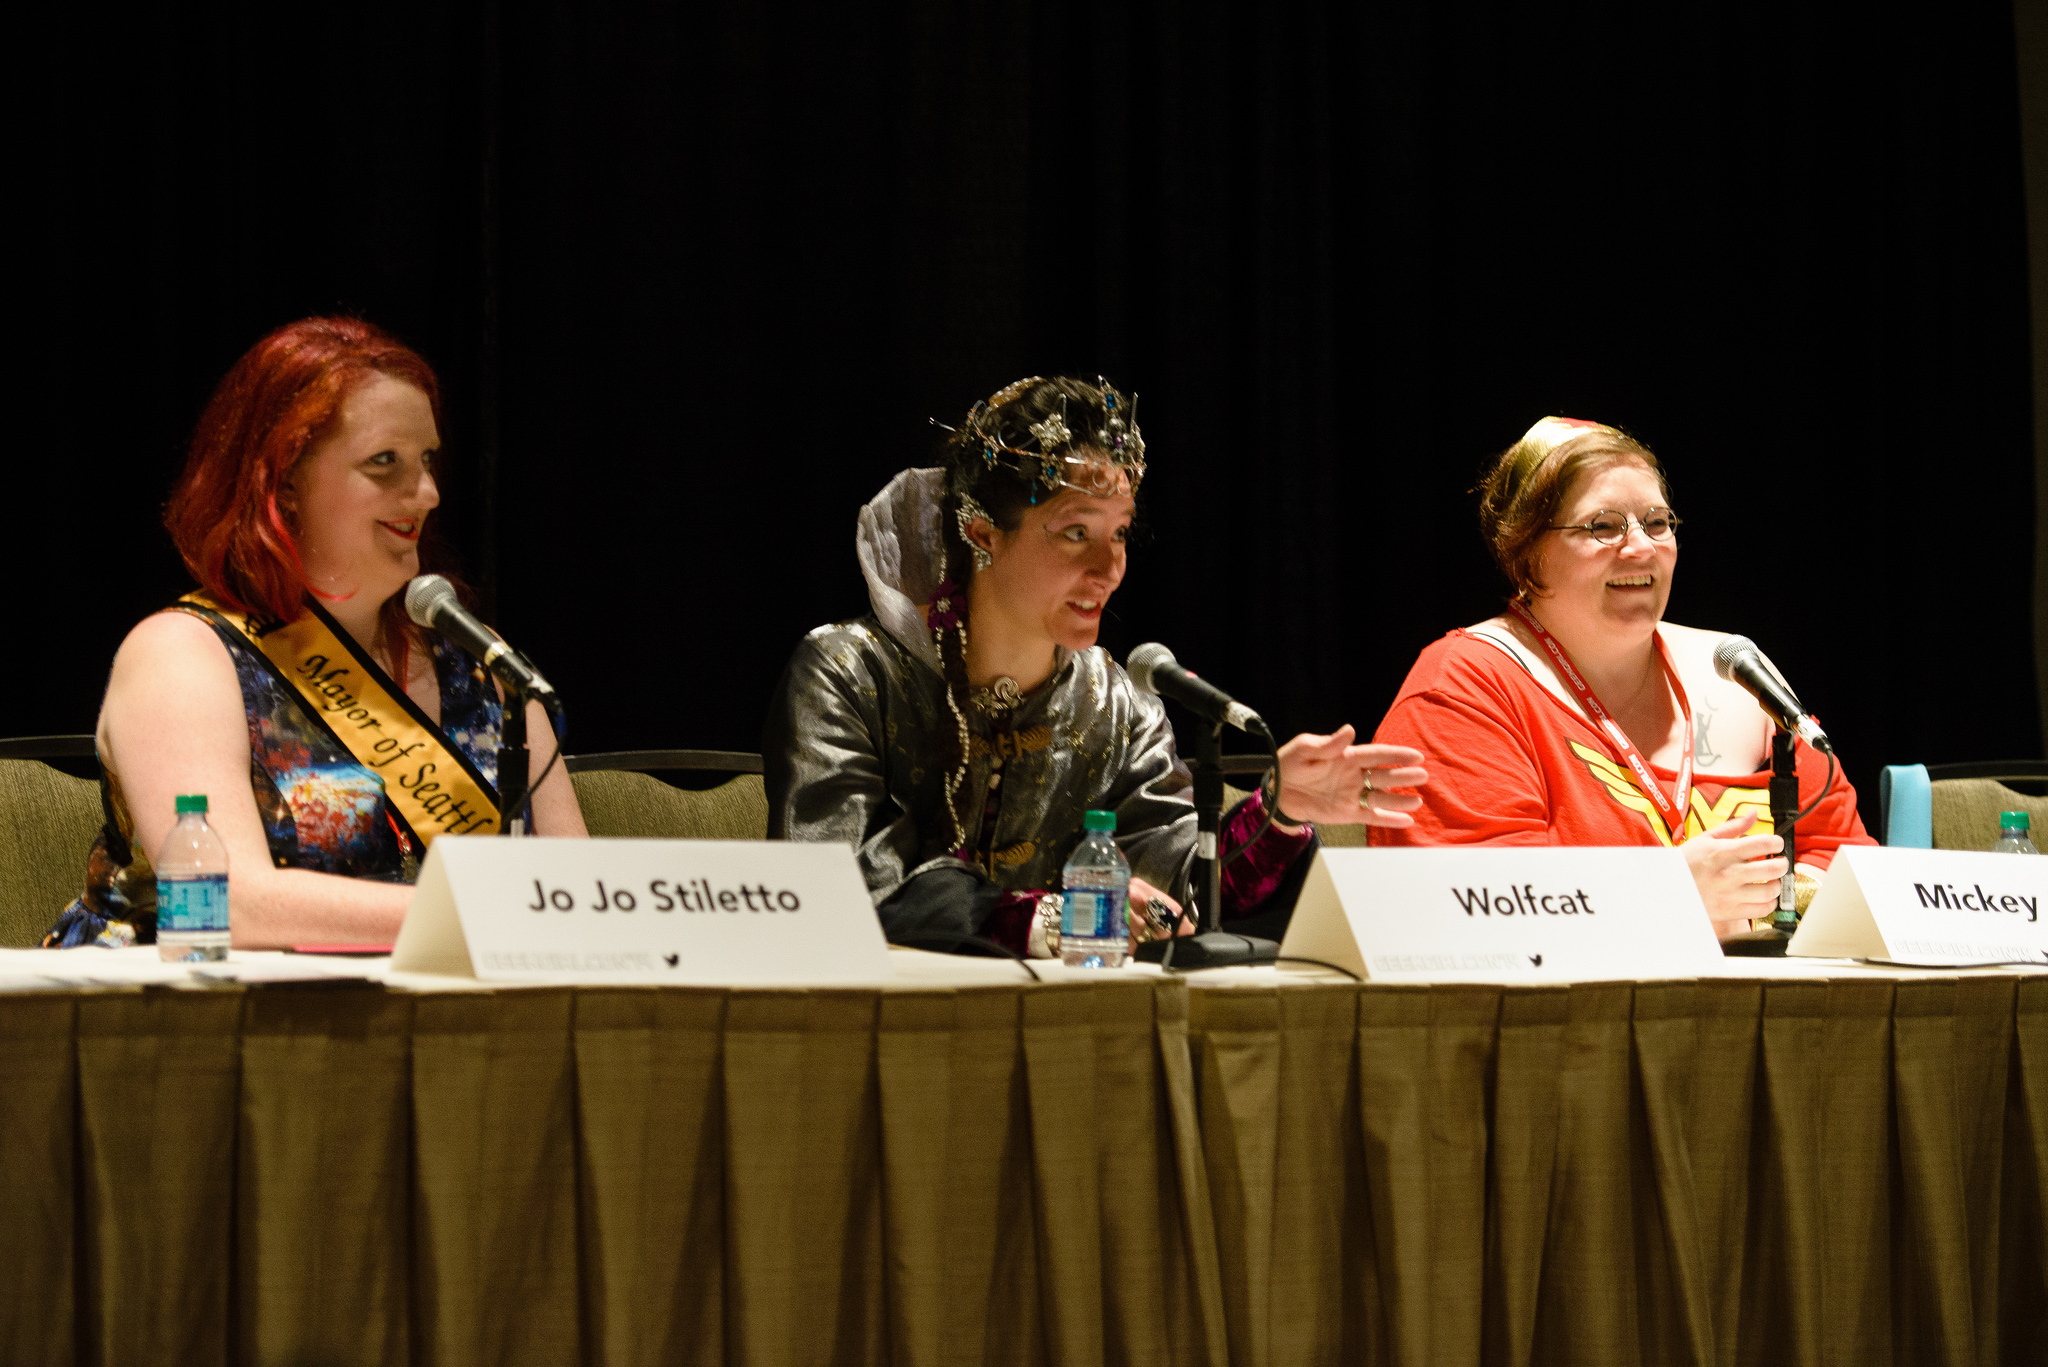 Panelists Jo Jo Stiletto, Wolfcat, and Mickey Schulz. Image from the GeekGirlCon Flickr